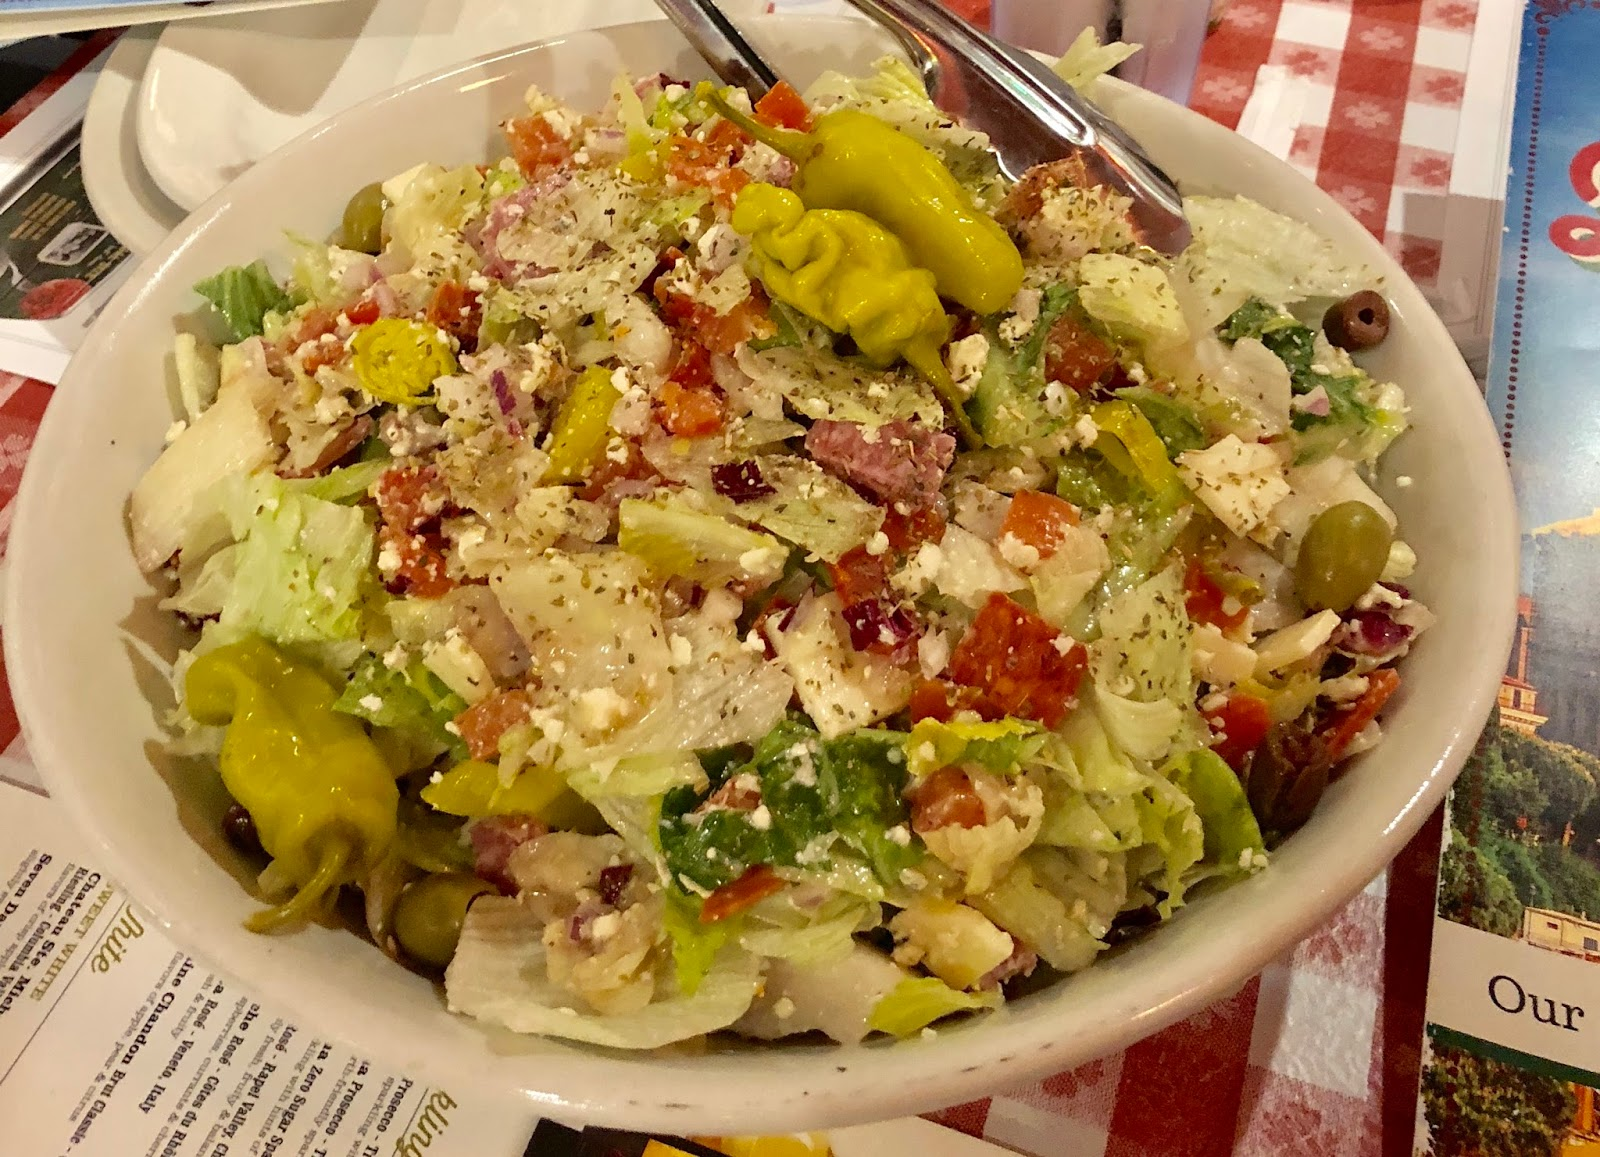 TASTE OF HAWAII: BUCA di BEPPO ITALIAN RESTAURANT